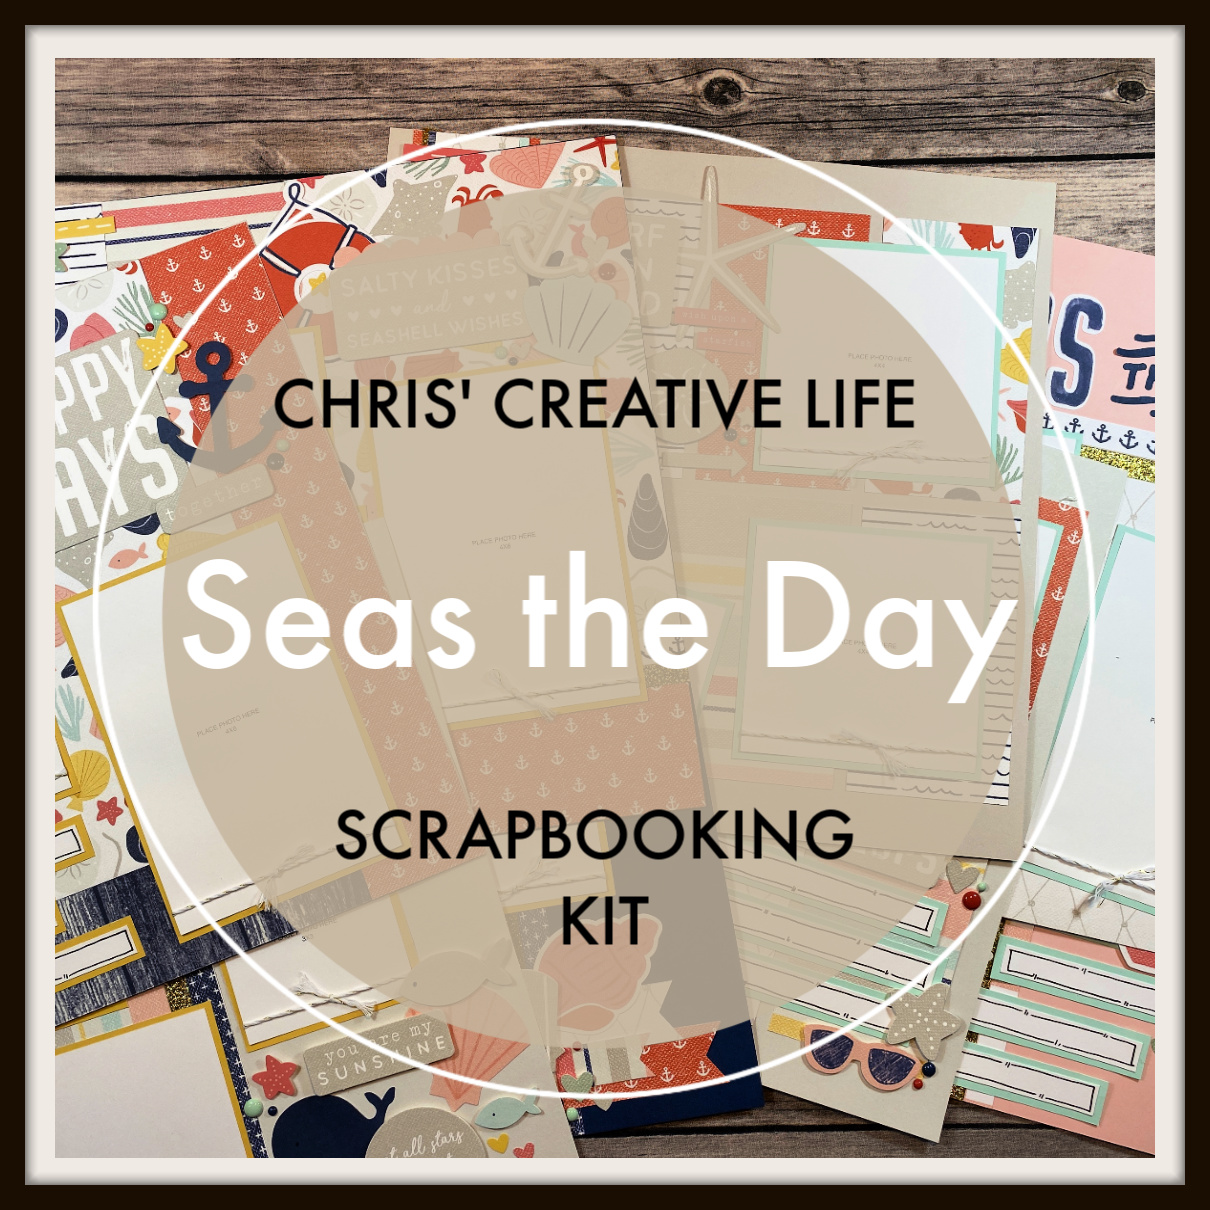 Seas The Day Scrapbooking Workshop Guide